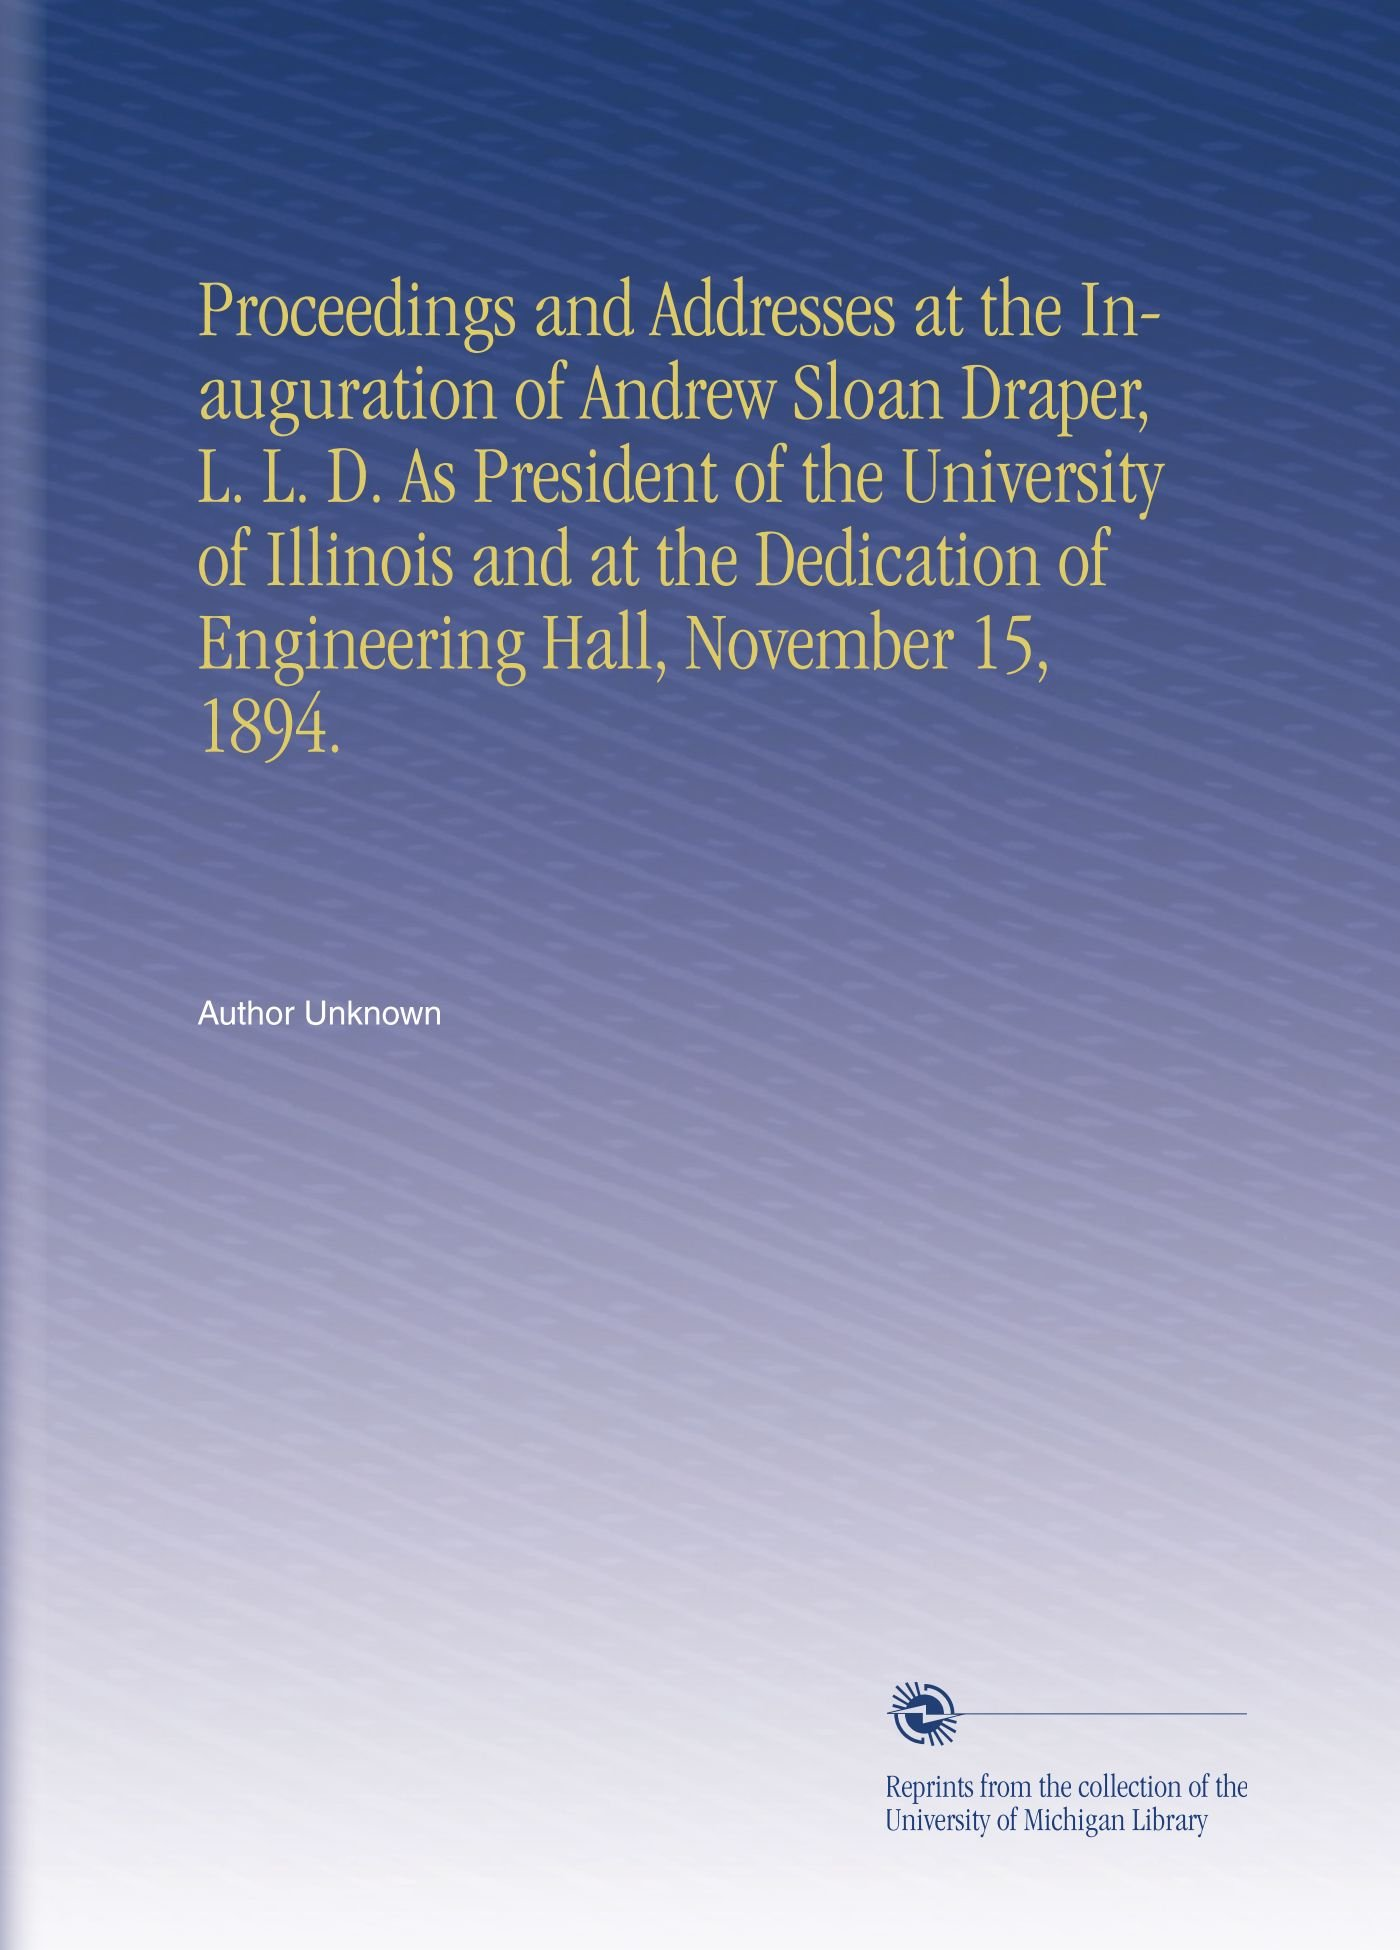 Download Proceedings and Addresses at the Inauguration of Andrew Sloan Draper, L. L. D. As President of the University of Illinois and at the Dedication of Engineering Hall, November 15, 1894. PDF ePub fb2 ebook